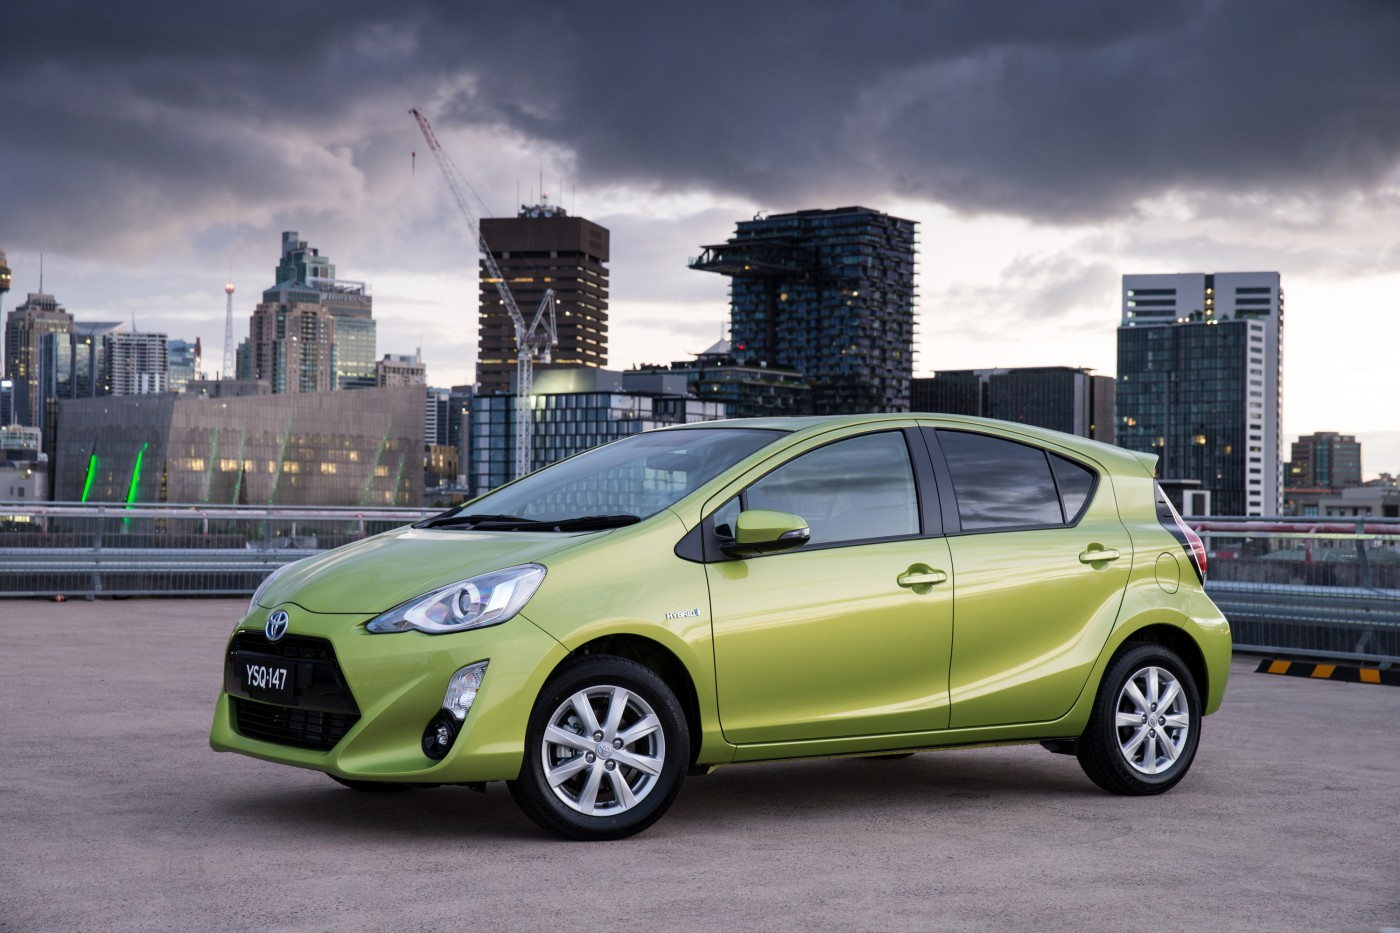 2015 toyota prius c gets facelift and price reduction practical motoring. Black Bedroom Furniture Sets. Home Design Ideas